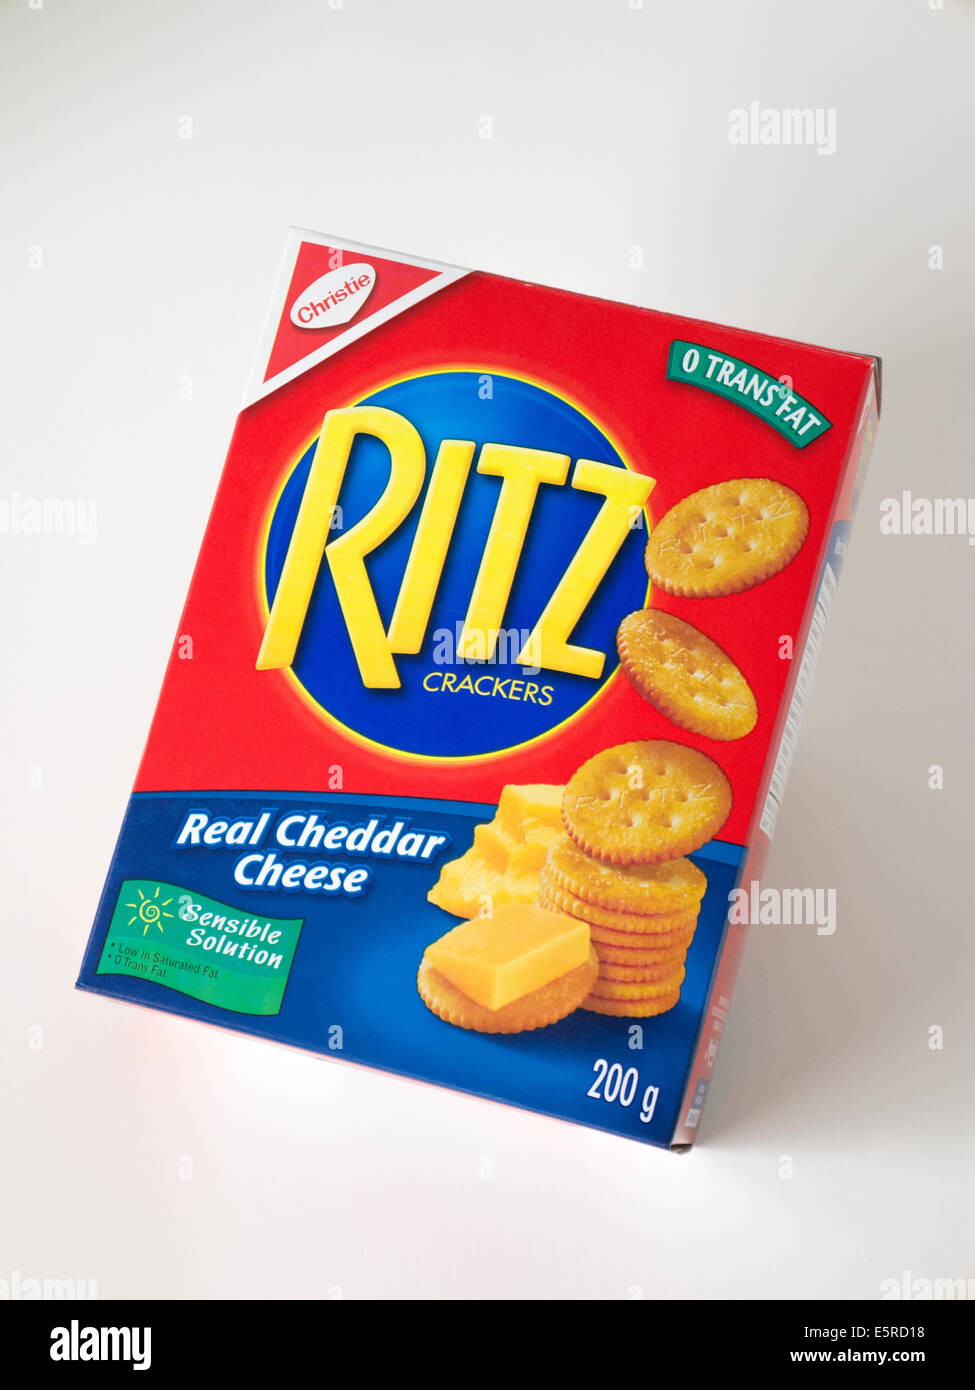 low fat snack ritz crackers - Stock Image